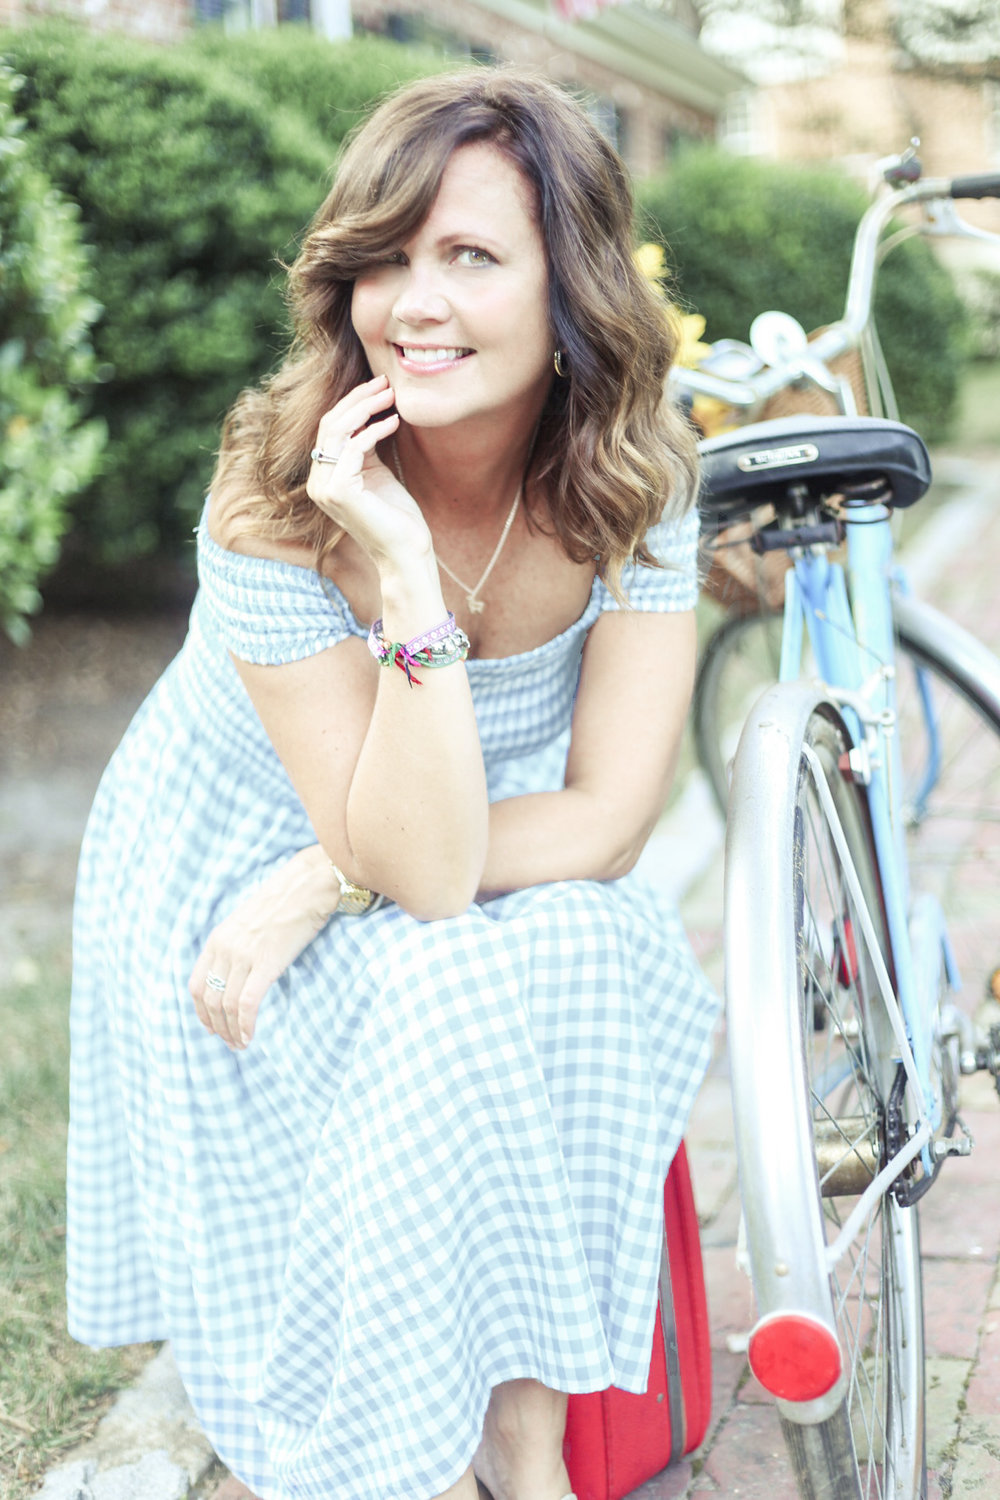 Stacie Marshall Arts Photography bike portrait.jpg